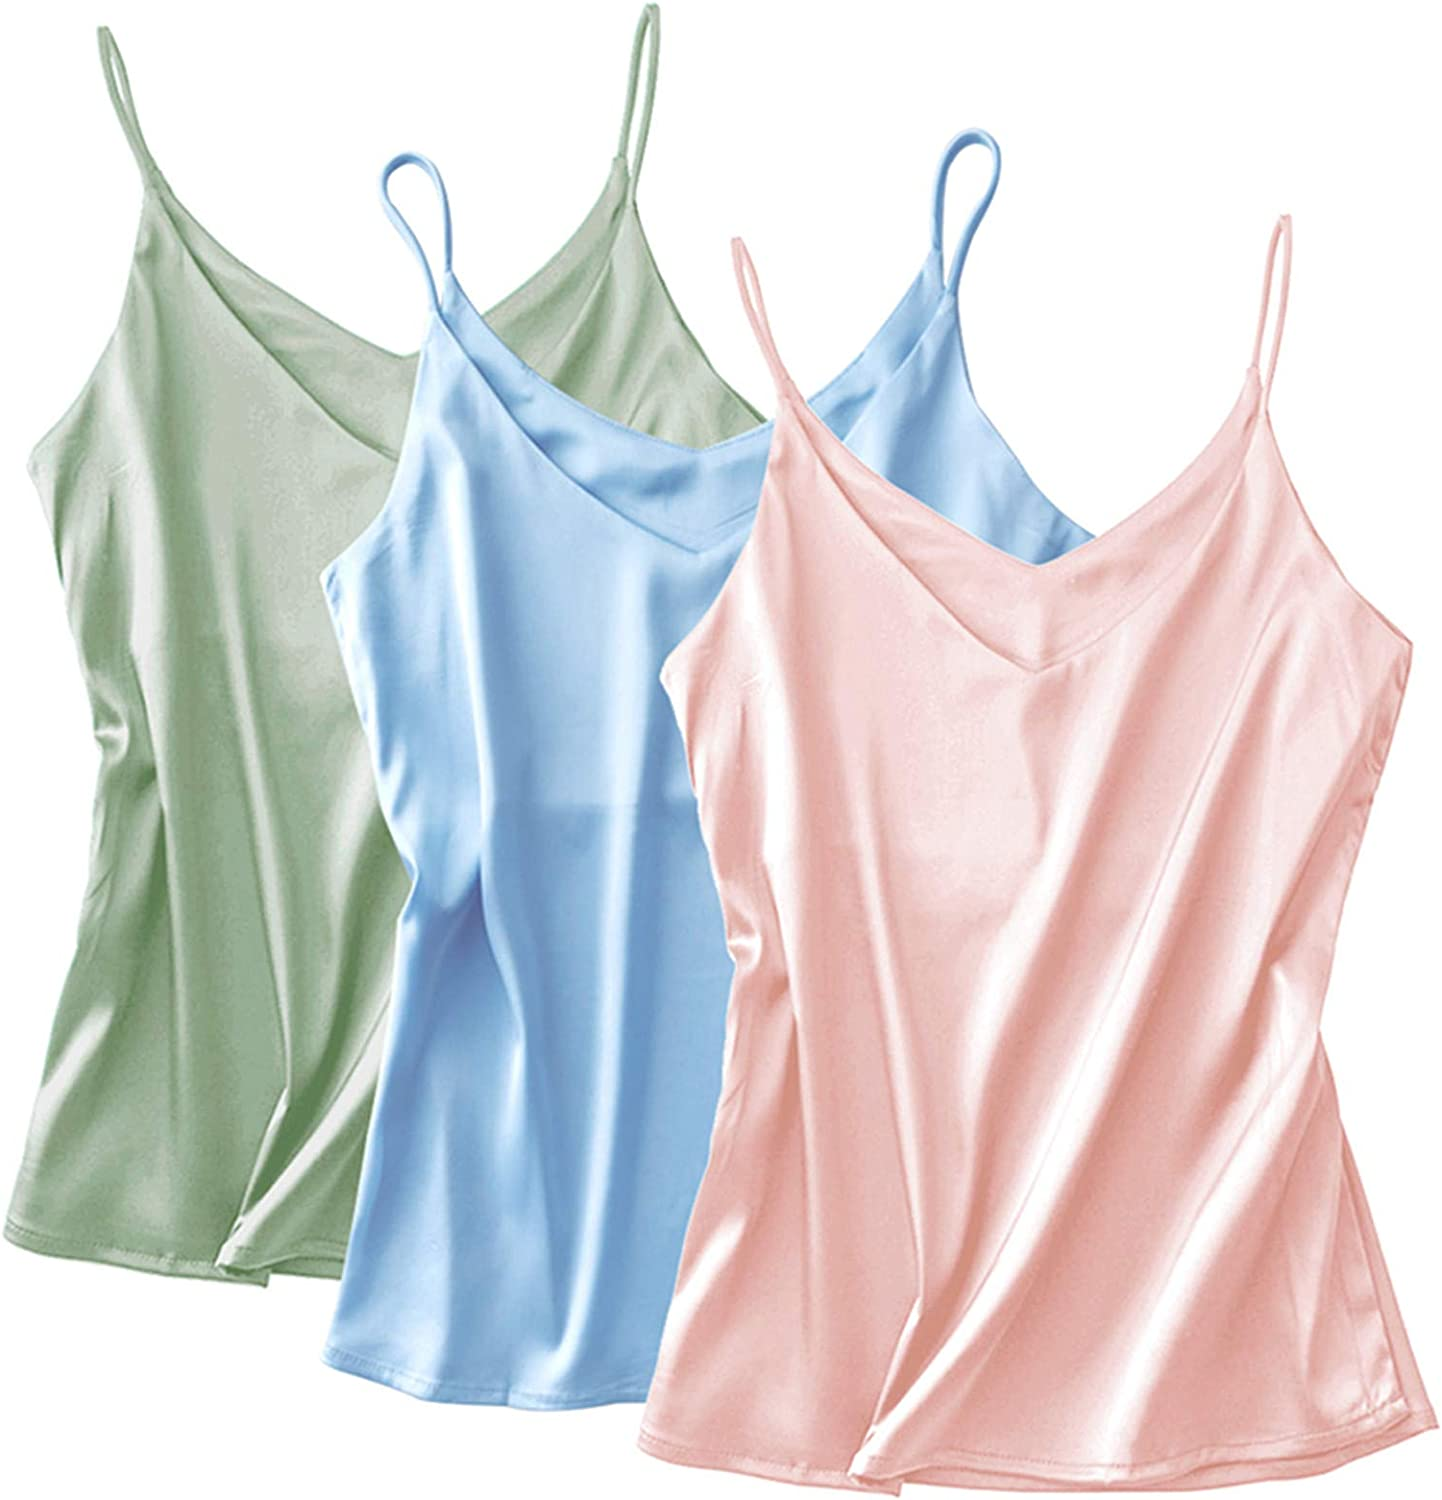 Miqieer Basic 3 Sale item Pack Women's OFFicial store Silk Tank Camisol Top Ladies V-Neck